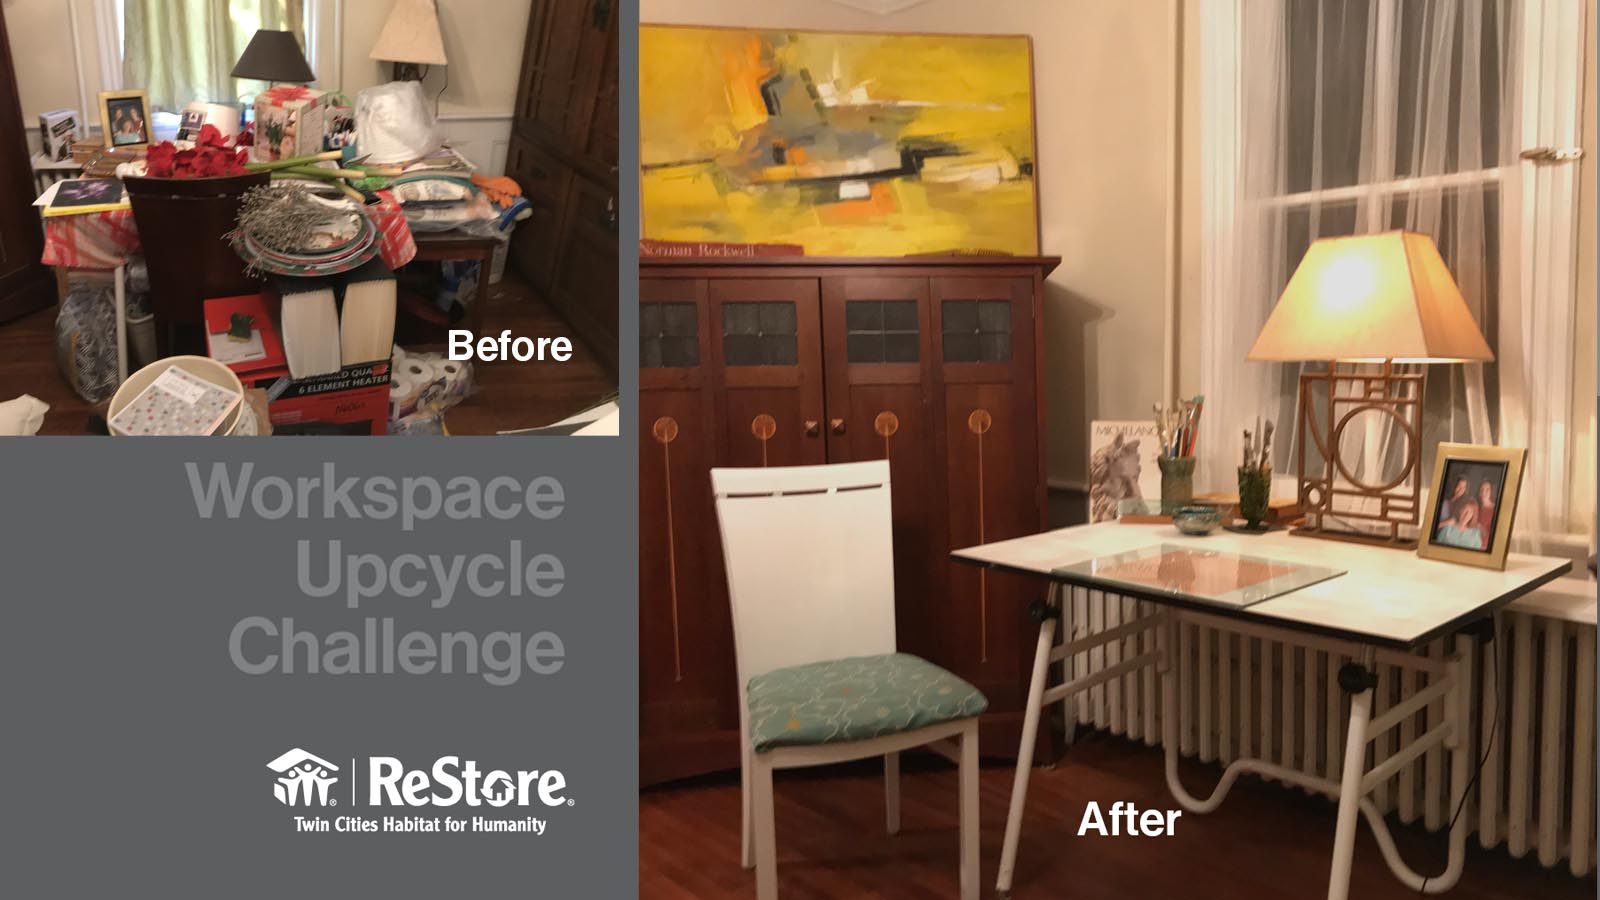 Winner of the ReStore Upcycle Challenge